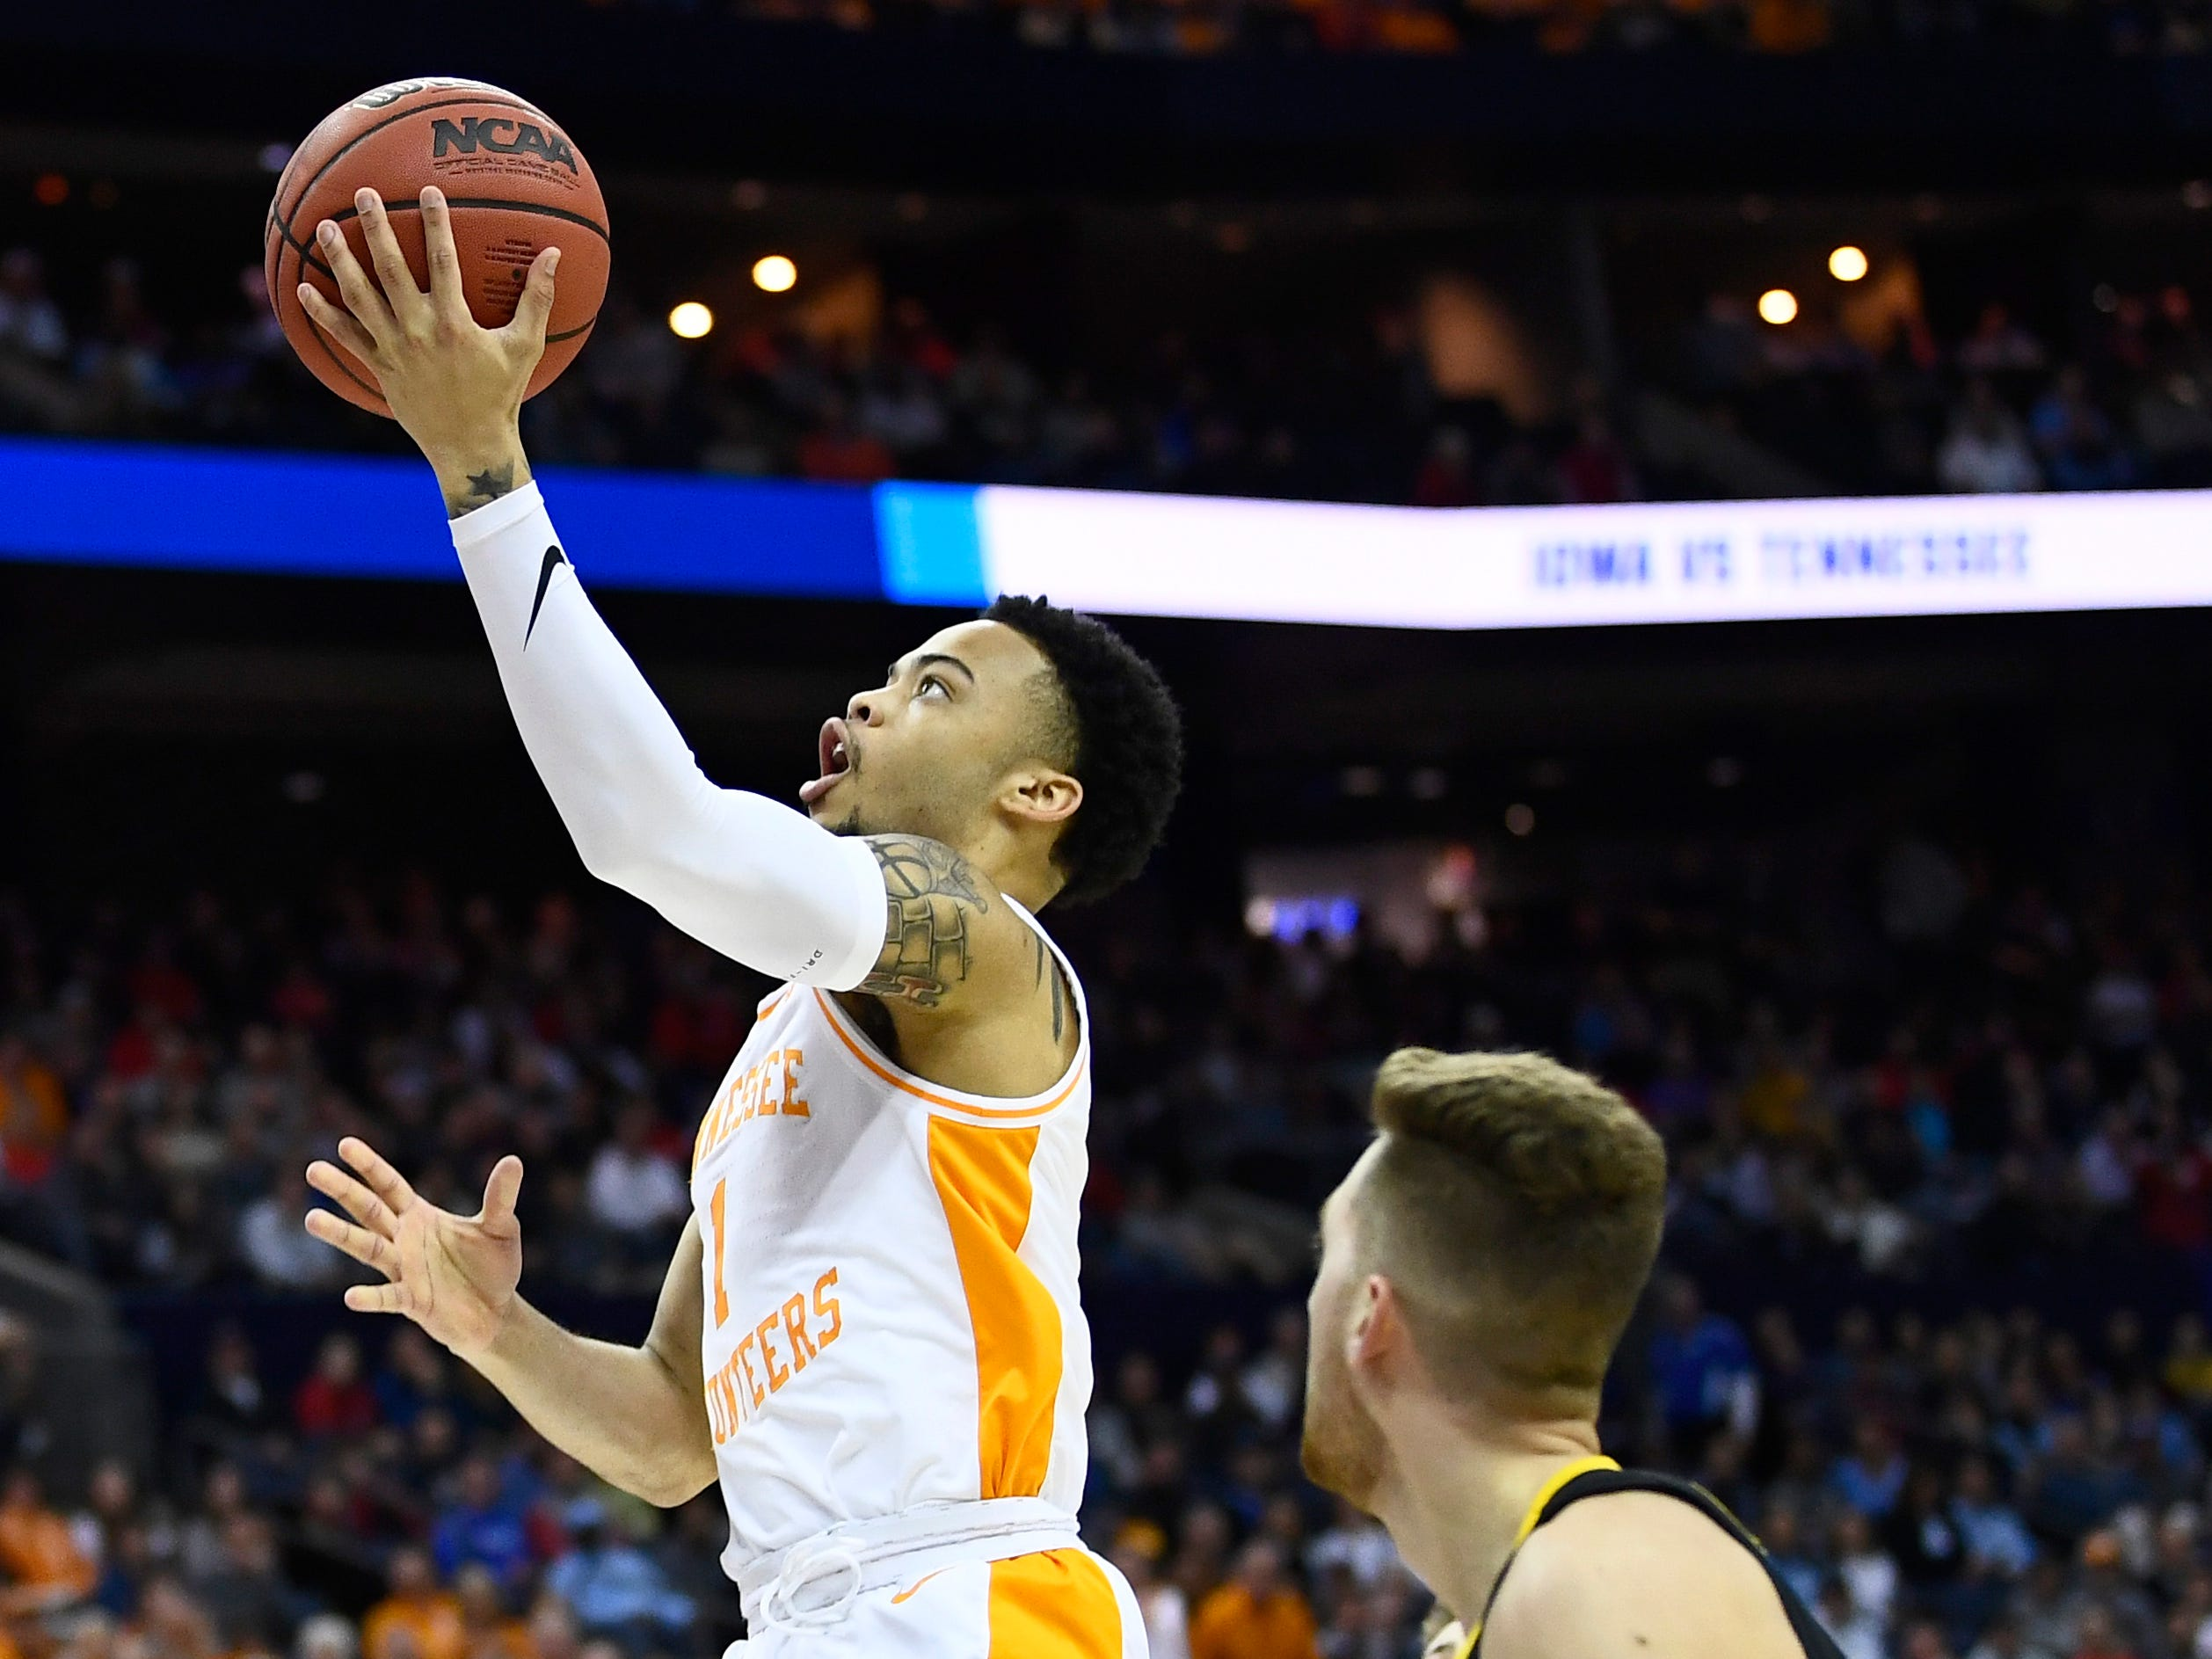 Tennessee guard Lamonte Turner (1) attempts a layup during the first half of the game against the Iowa Hawkeyes in the second round of the NCAA Tournament at Nationwide Arena in Columbus, Ohio, Sunday, March 24, 2019.